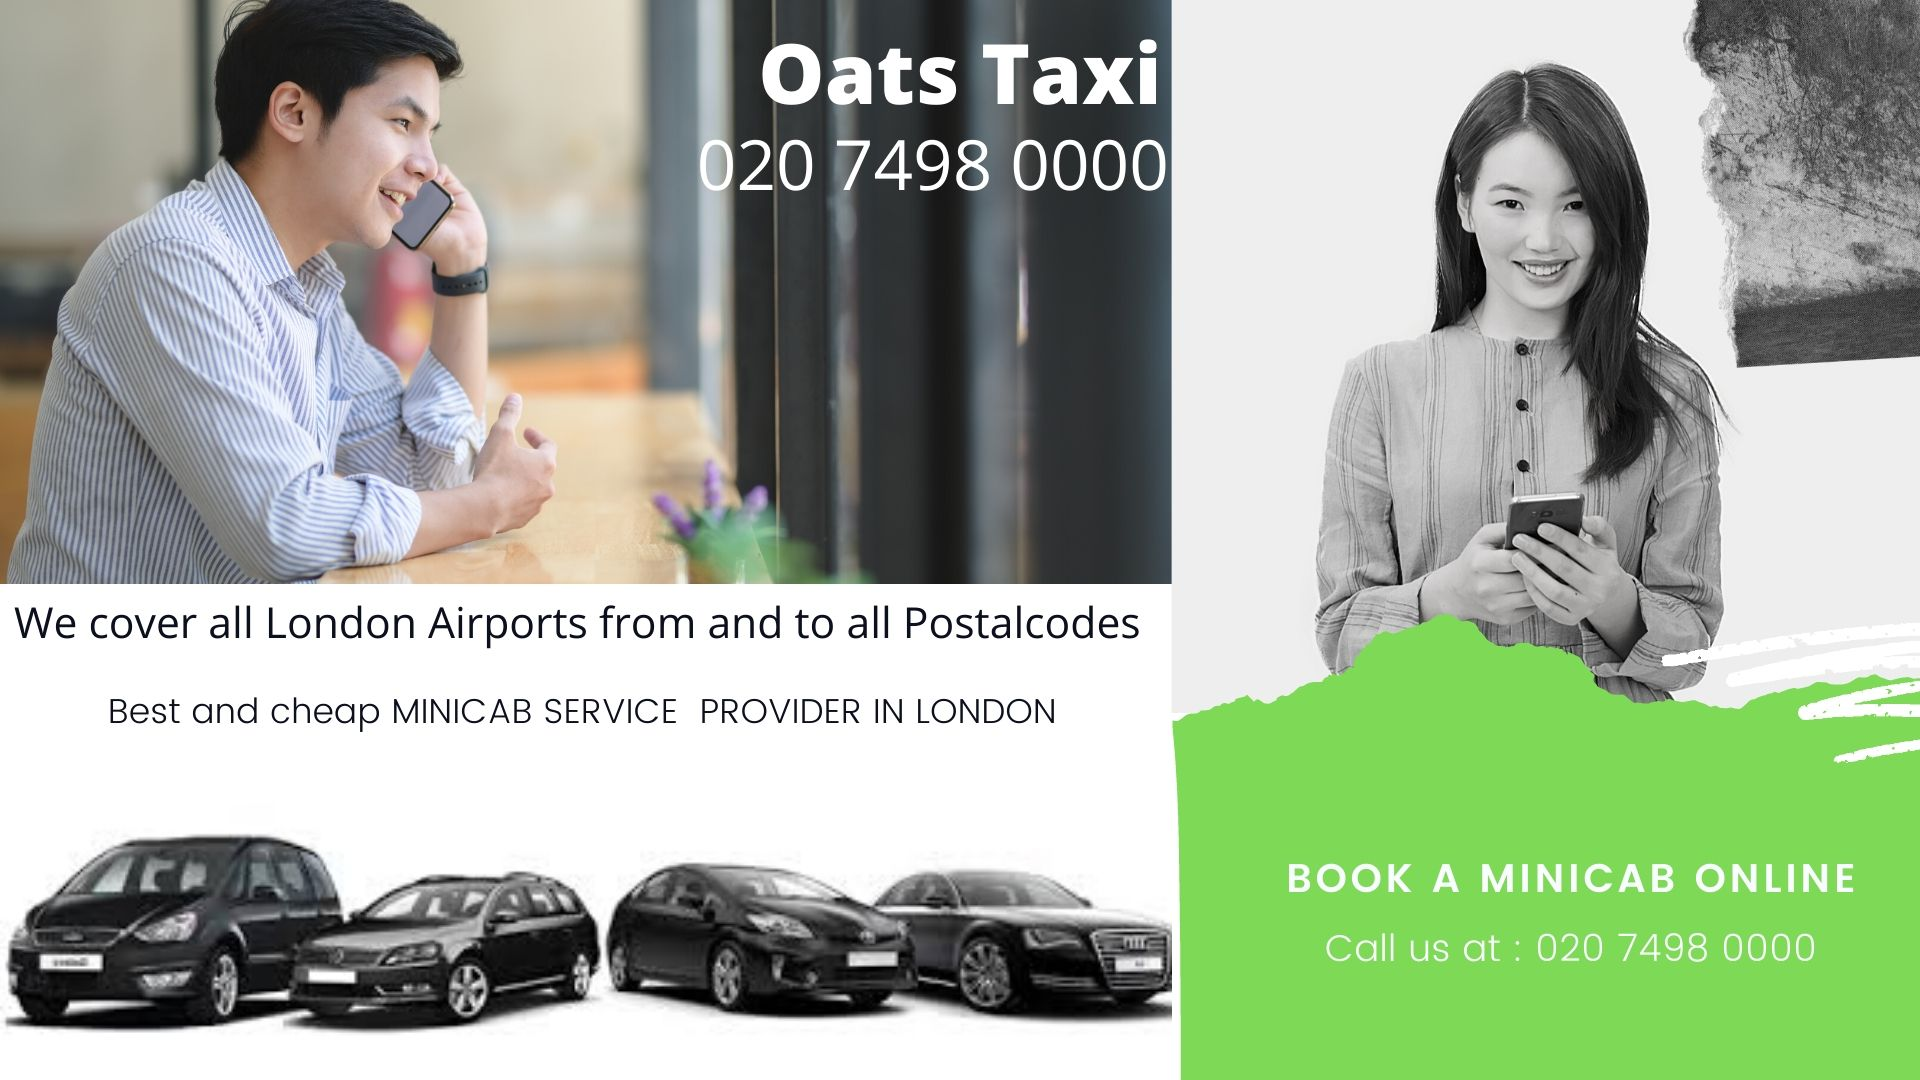 Nearest Taxi Office in Ealing | Nearest Taxi Office in Gatwick Airport | Call now : 02074980000